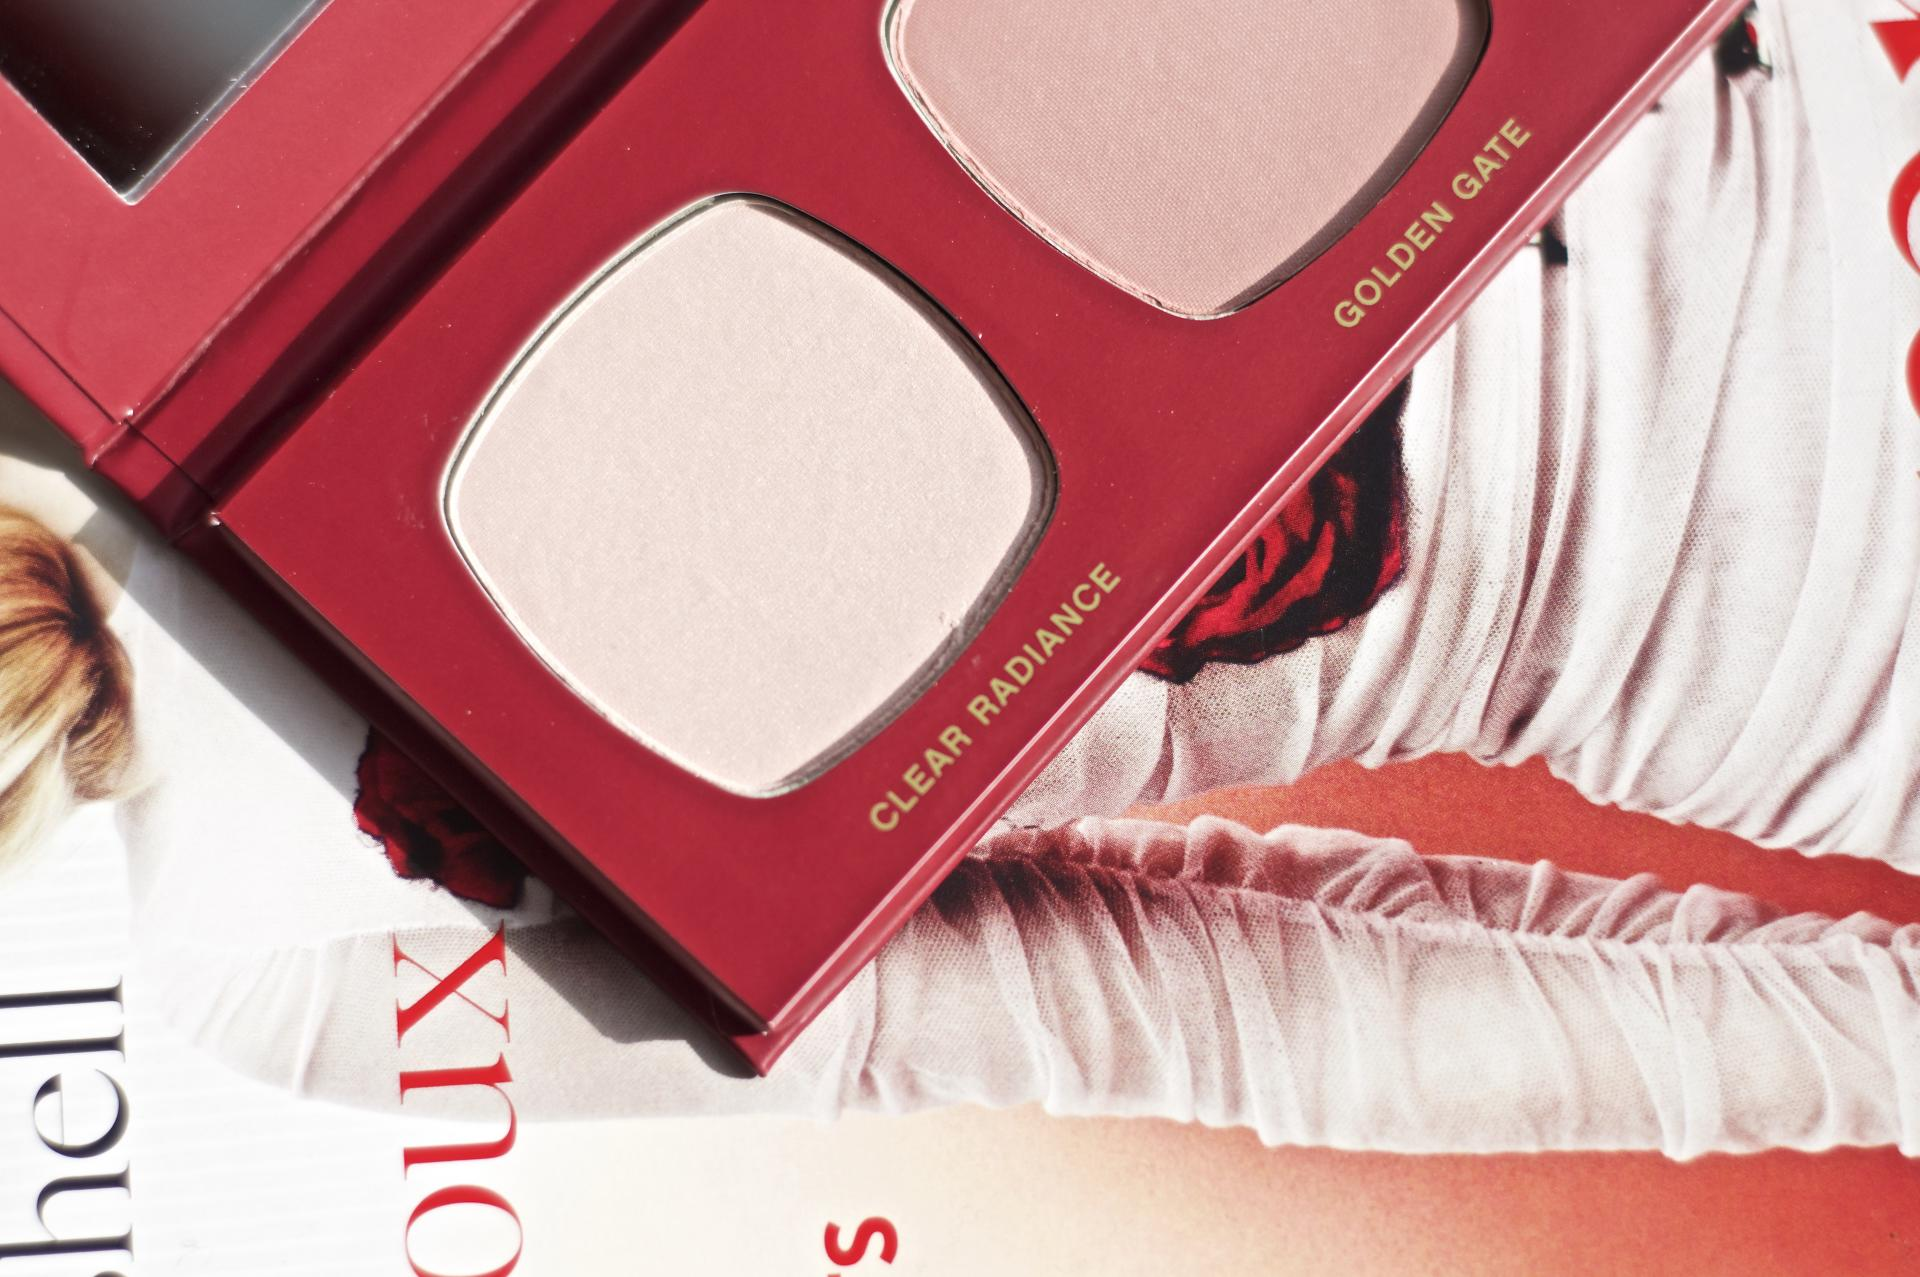 Made From Beauty bareMinerals The Royal Court Palette Clear Radiance